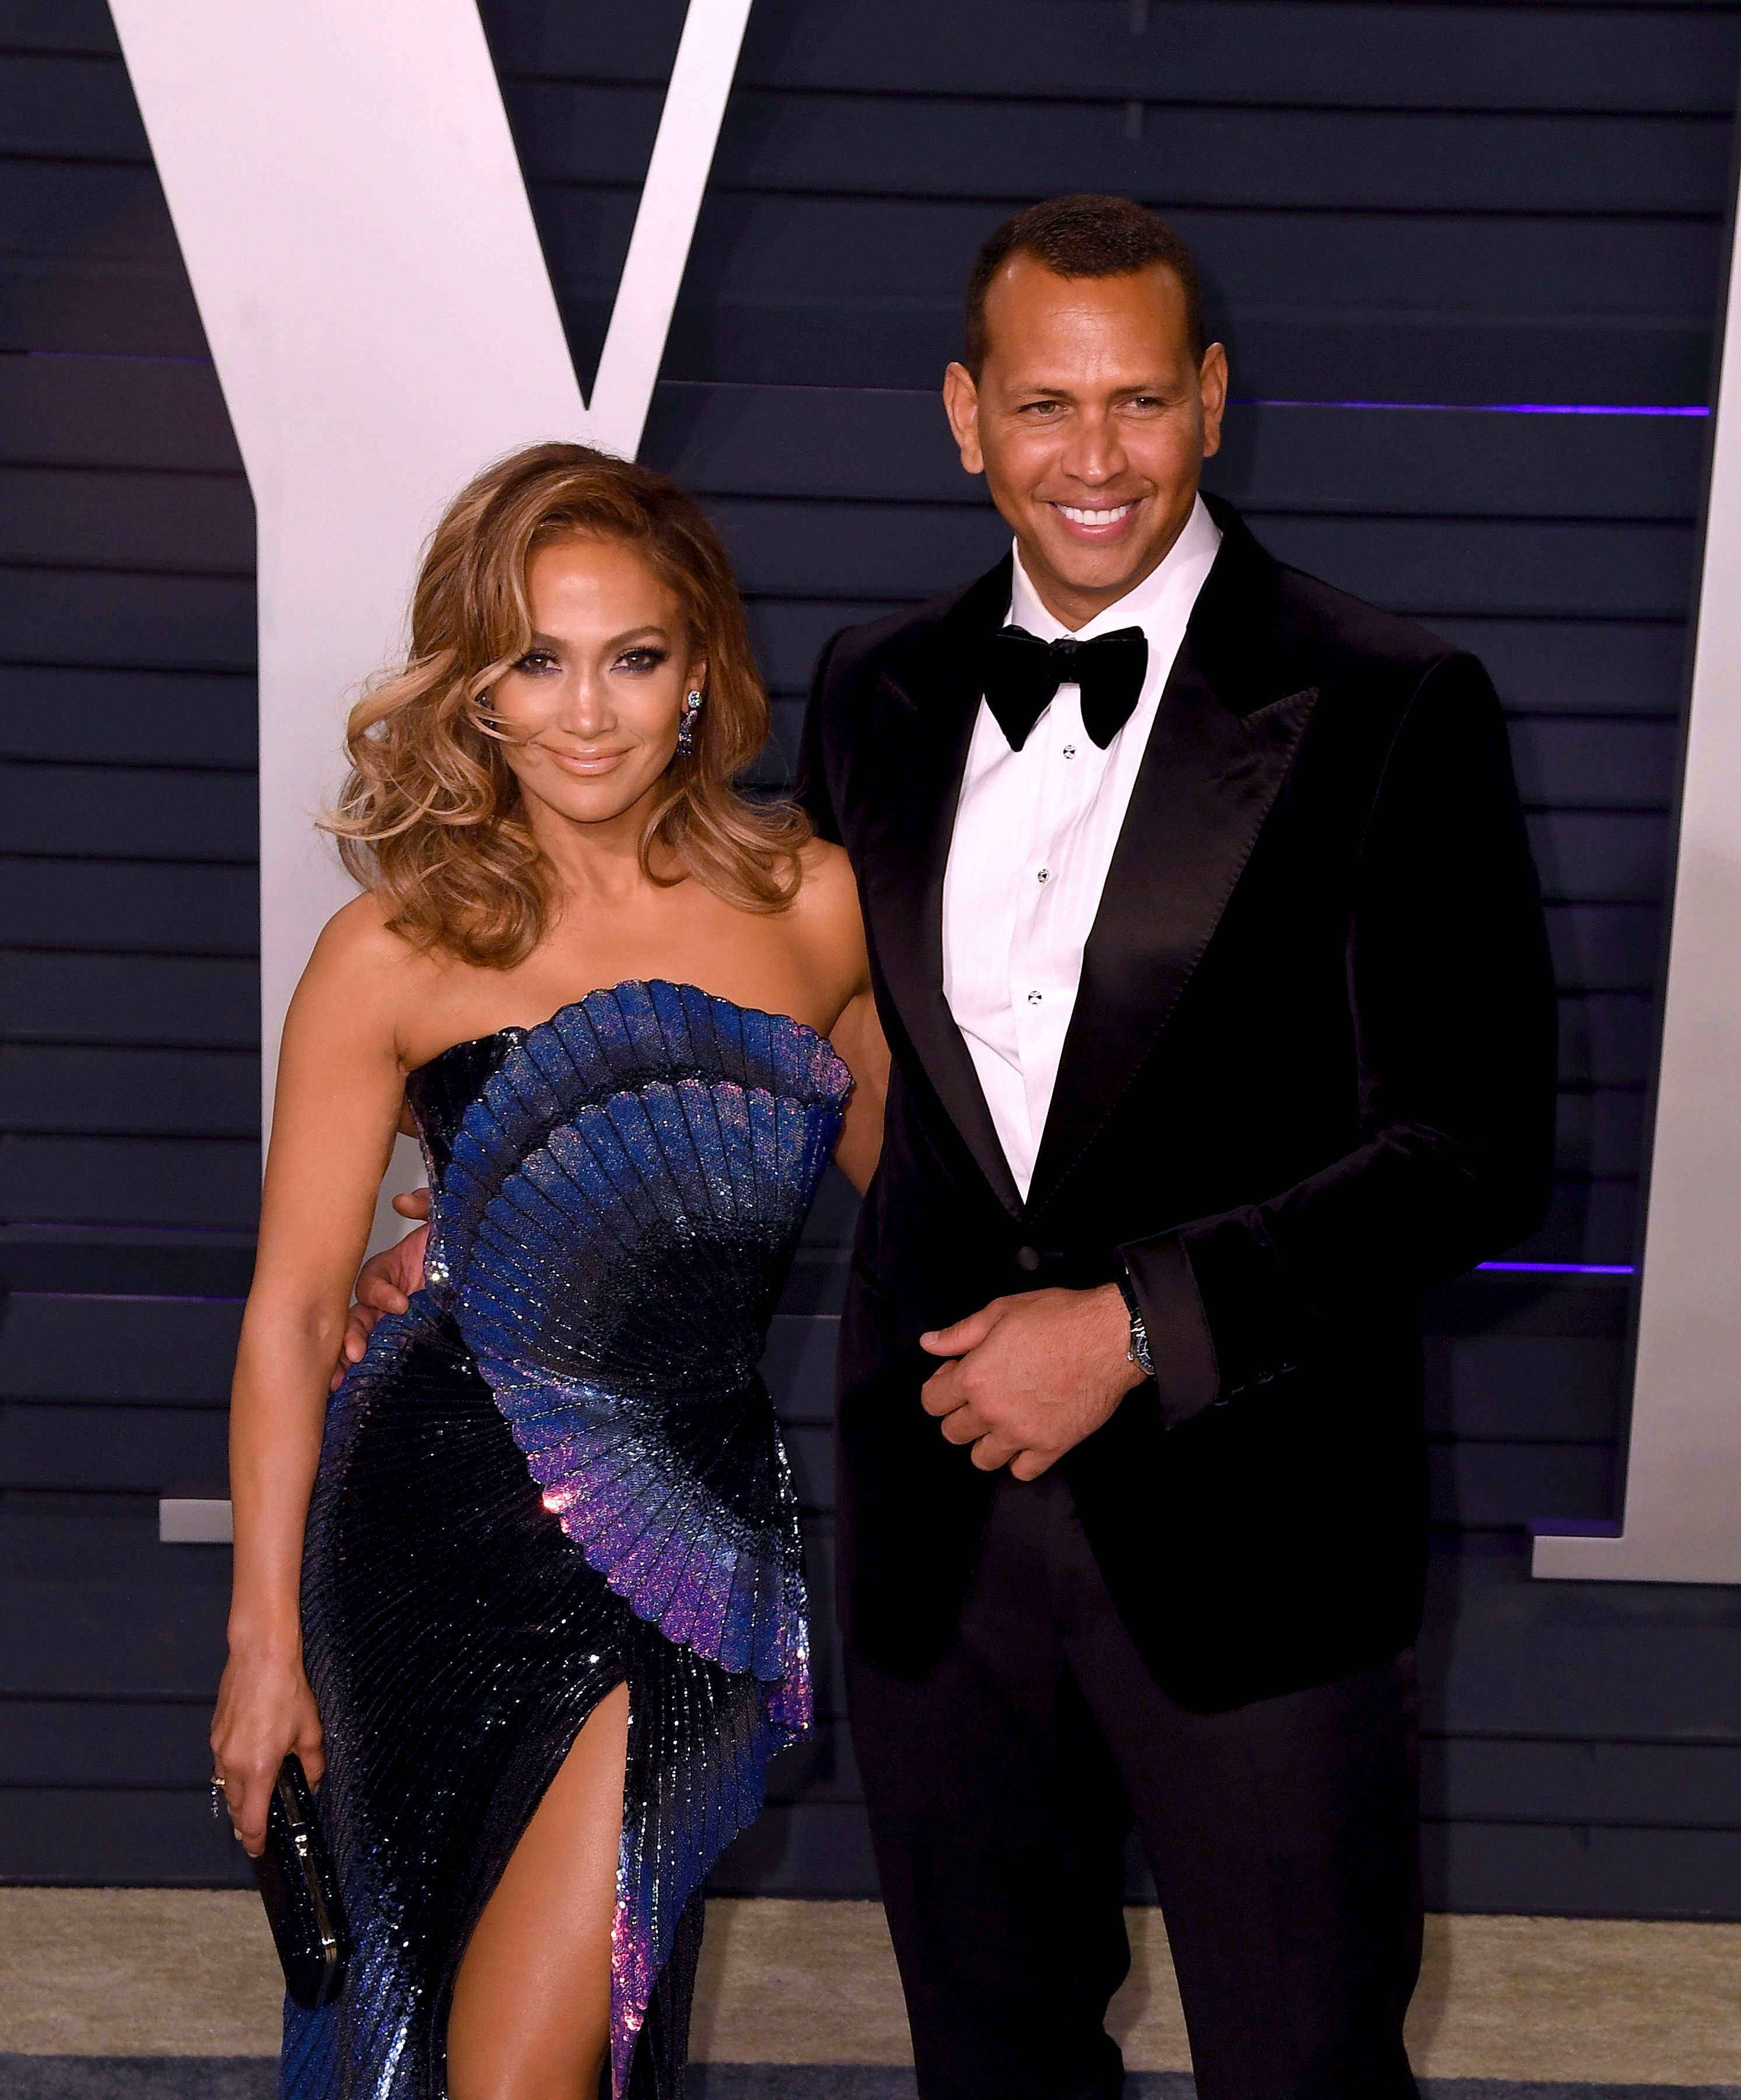 BEVERLY HILLS, CALIFORNIA - FEBRUARY 24: Jennifer Lopez and Alex Rodriguez attends 2019 Vanity Fair Oscar Party at Wallis Annenberg Center for the Performing Arts on February 24, 2019 in Beverly Hills, California. Photo: imageSPACE /MediaPunch /IPX